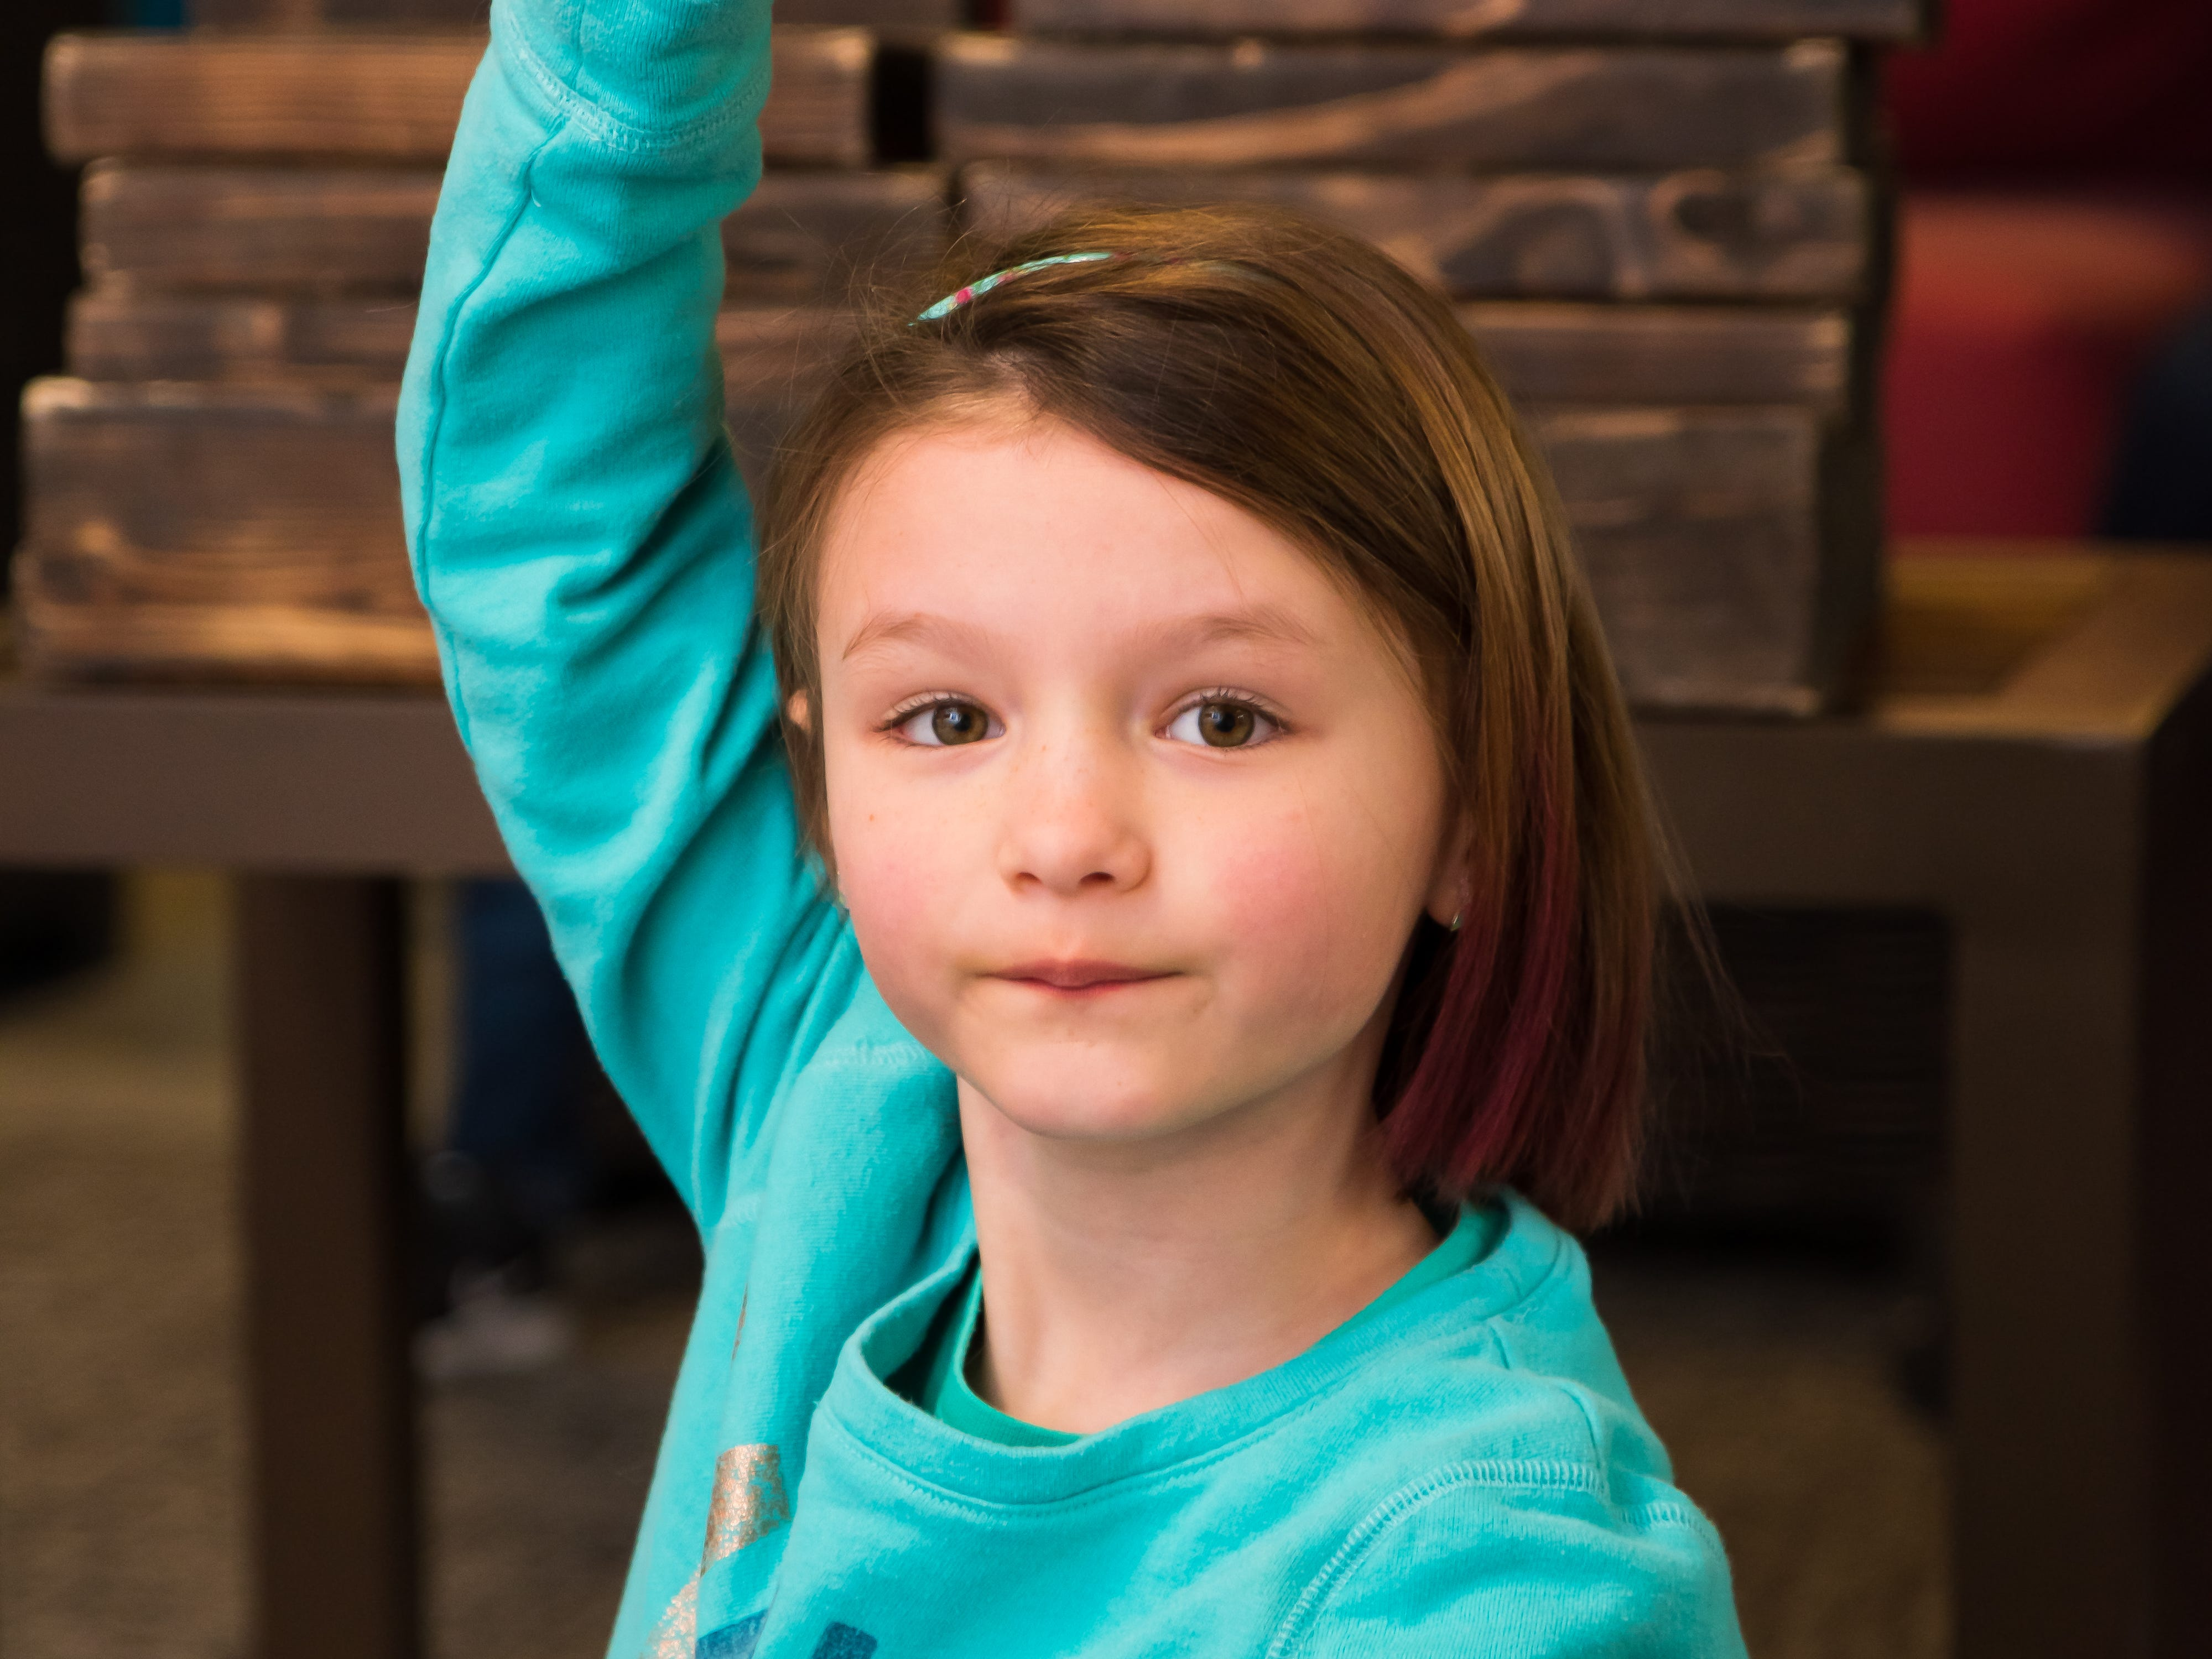 Emarie Mitchell, 7, of Altoona raises her hand to answer a question Wednesday, March 20, 2019, during a Science Center program at the Outlets of Des Moines in Altoona.